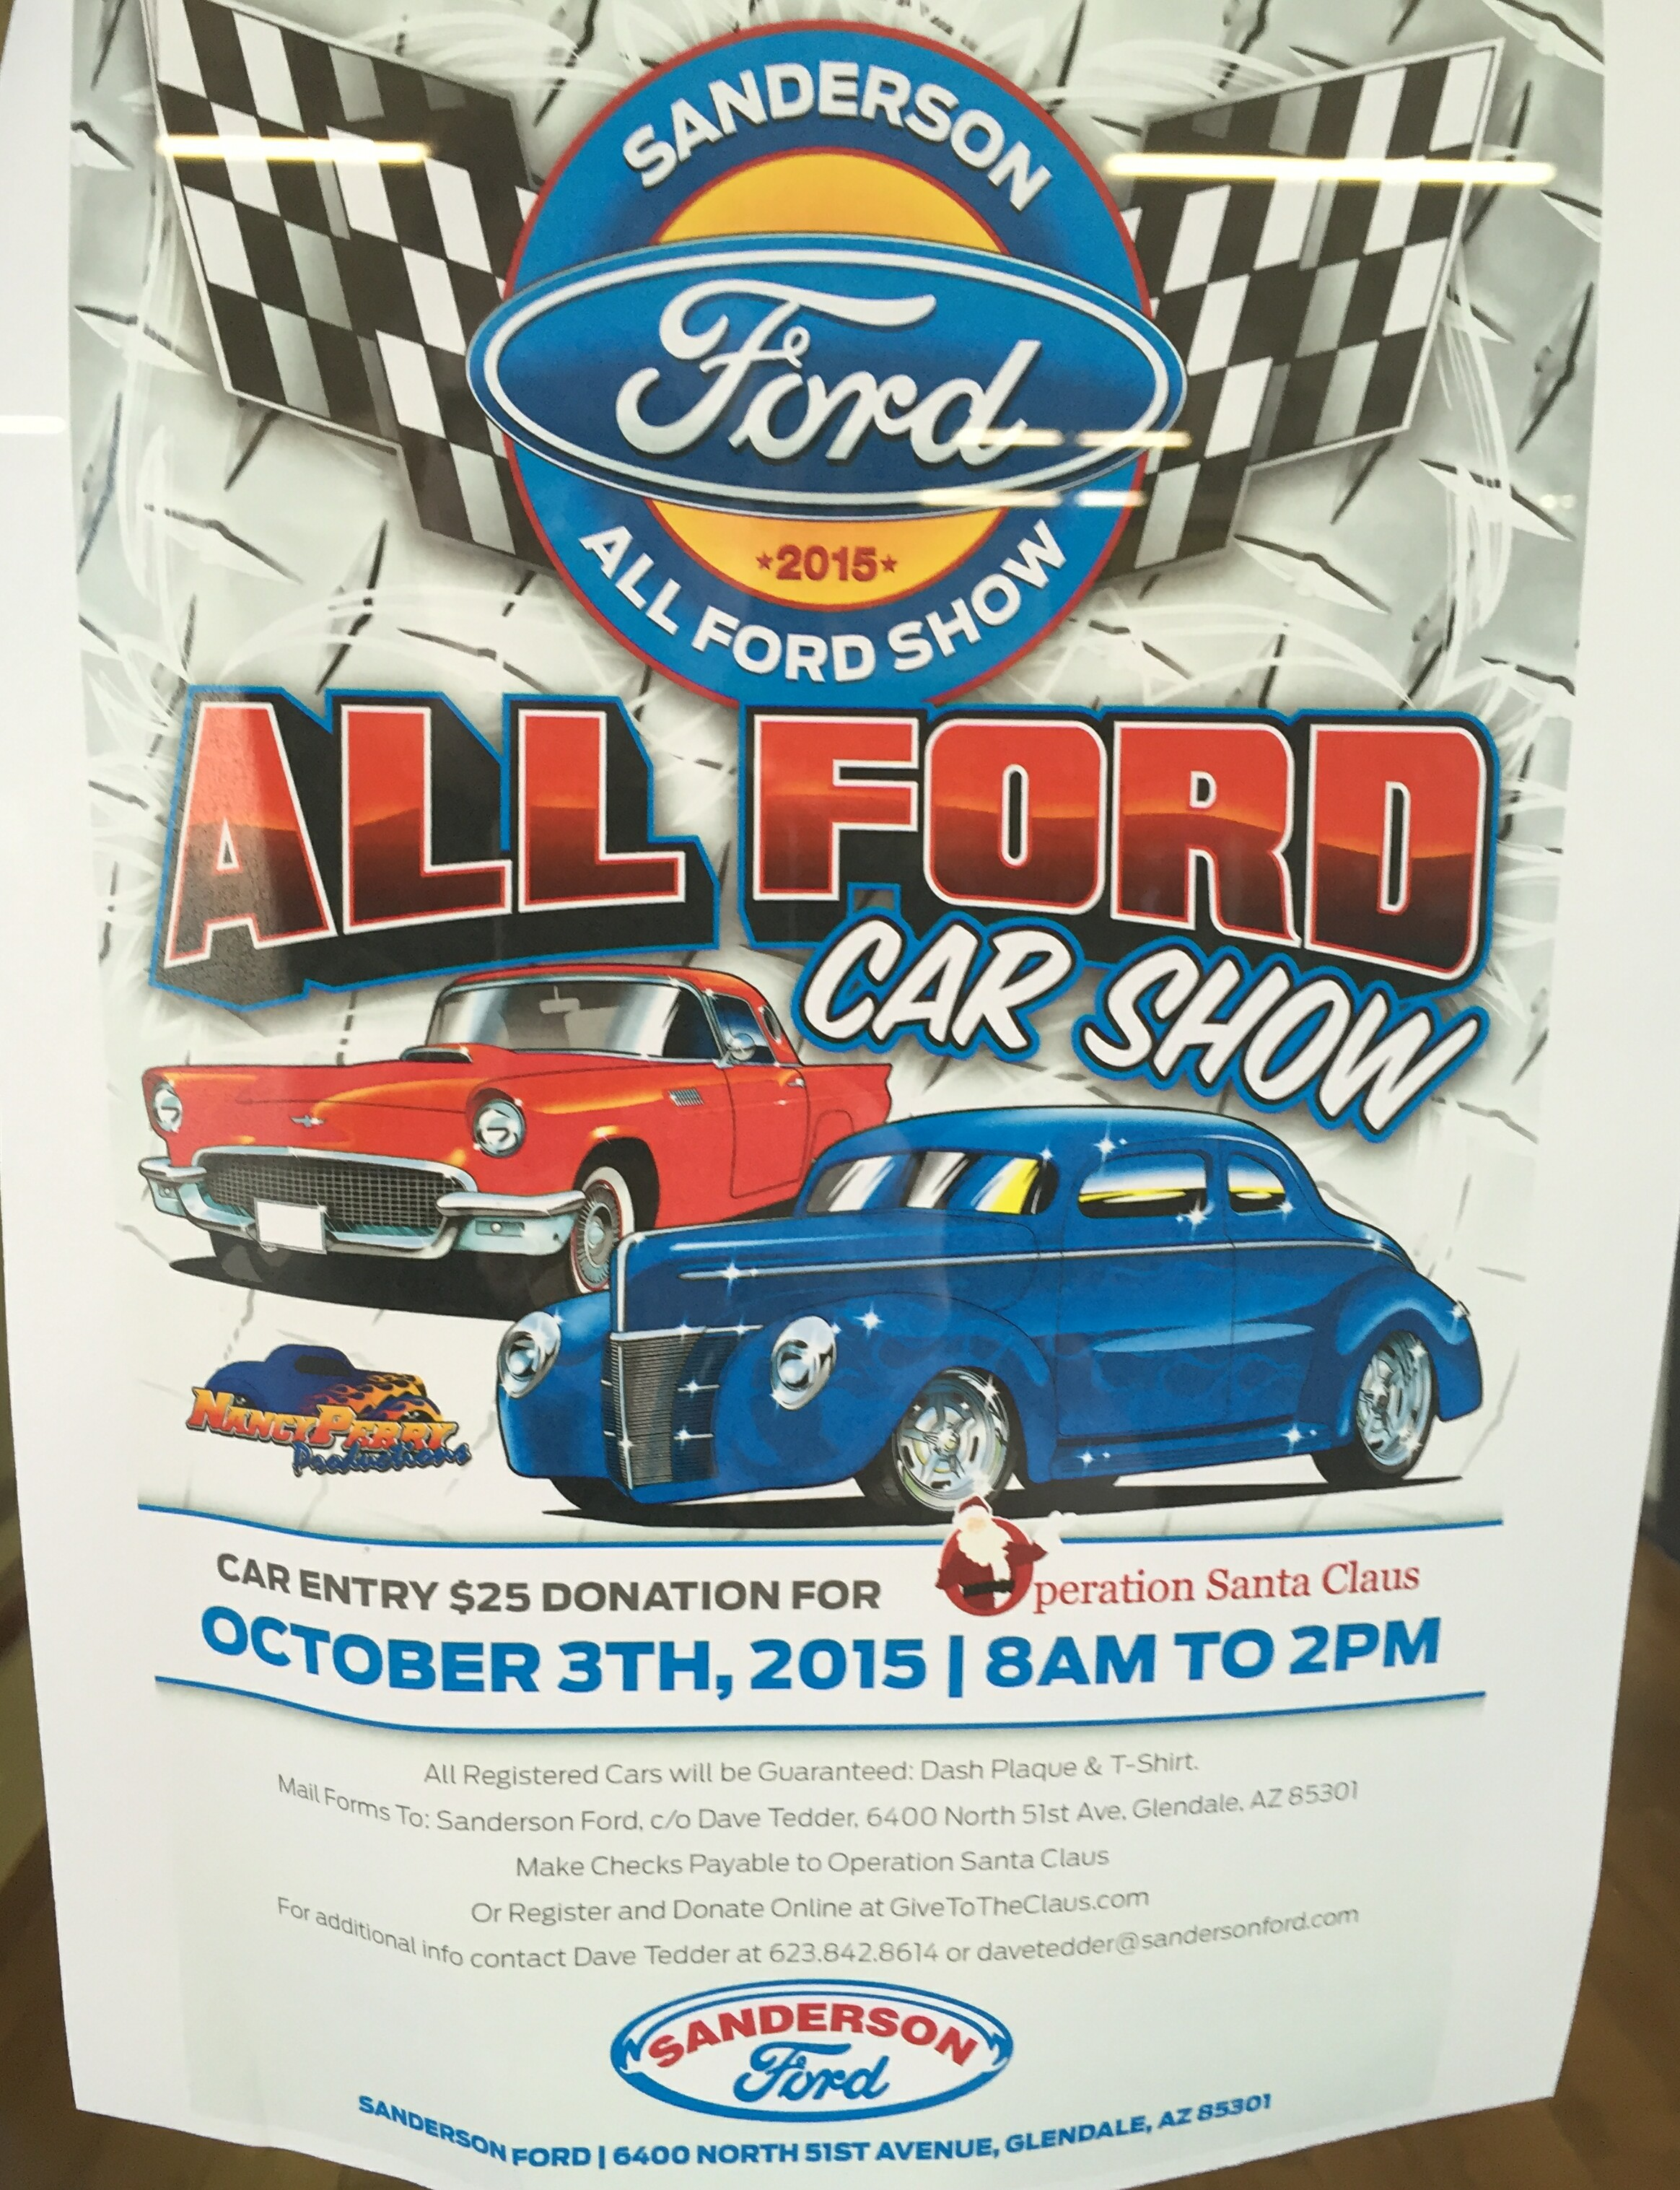 Sanderson Fords Annual All Ford Car Show Oct Rd - Sanderson ford car show